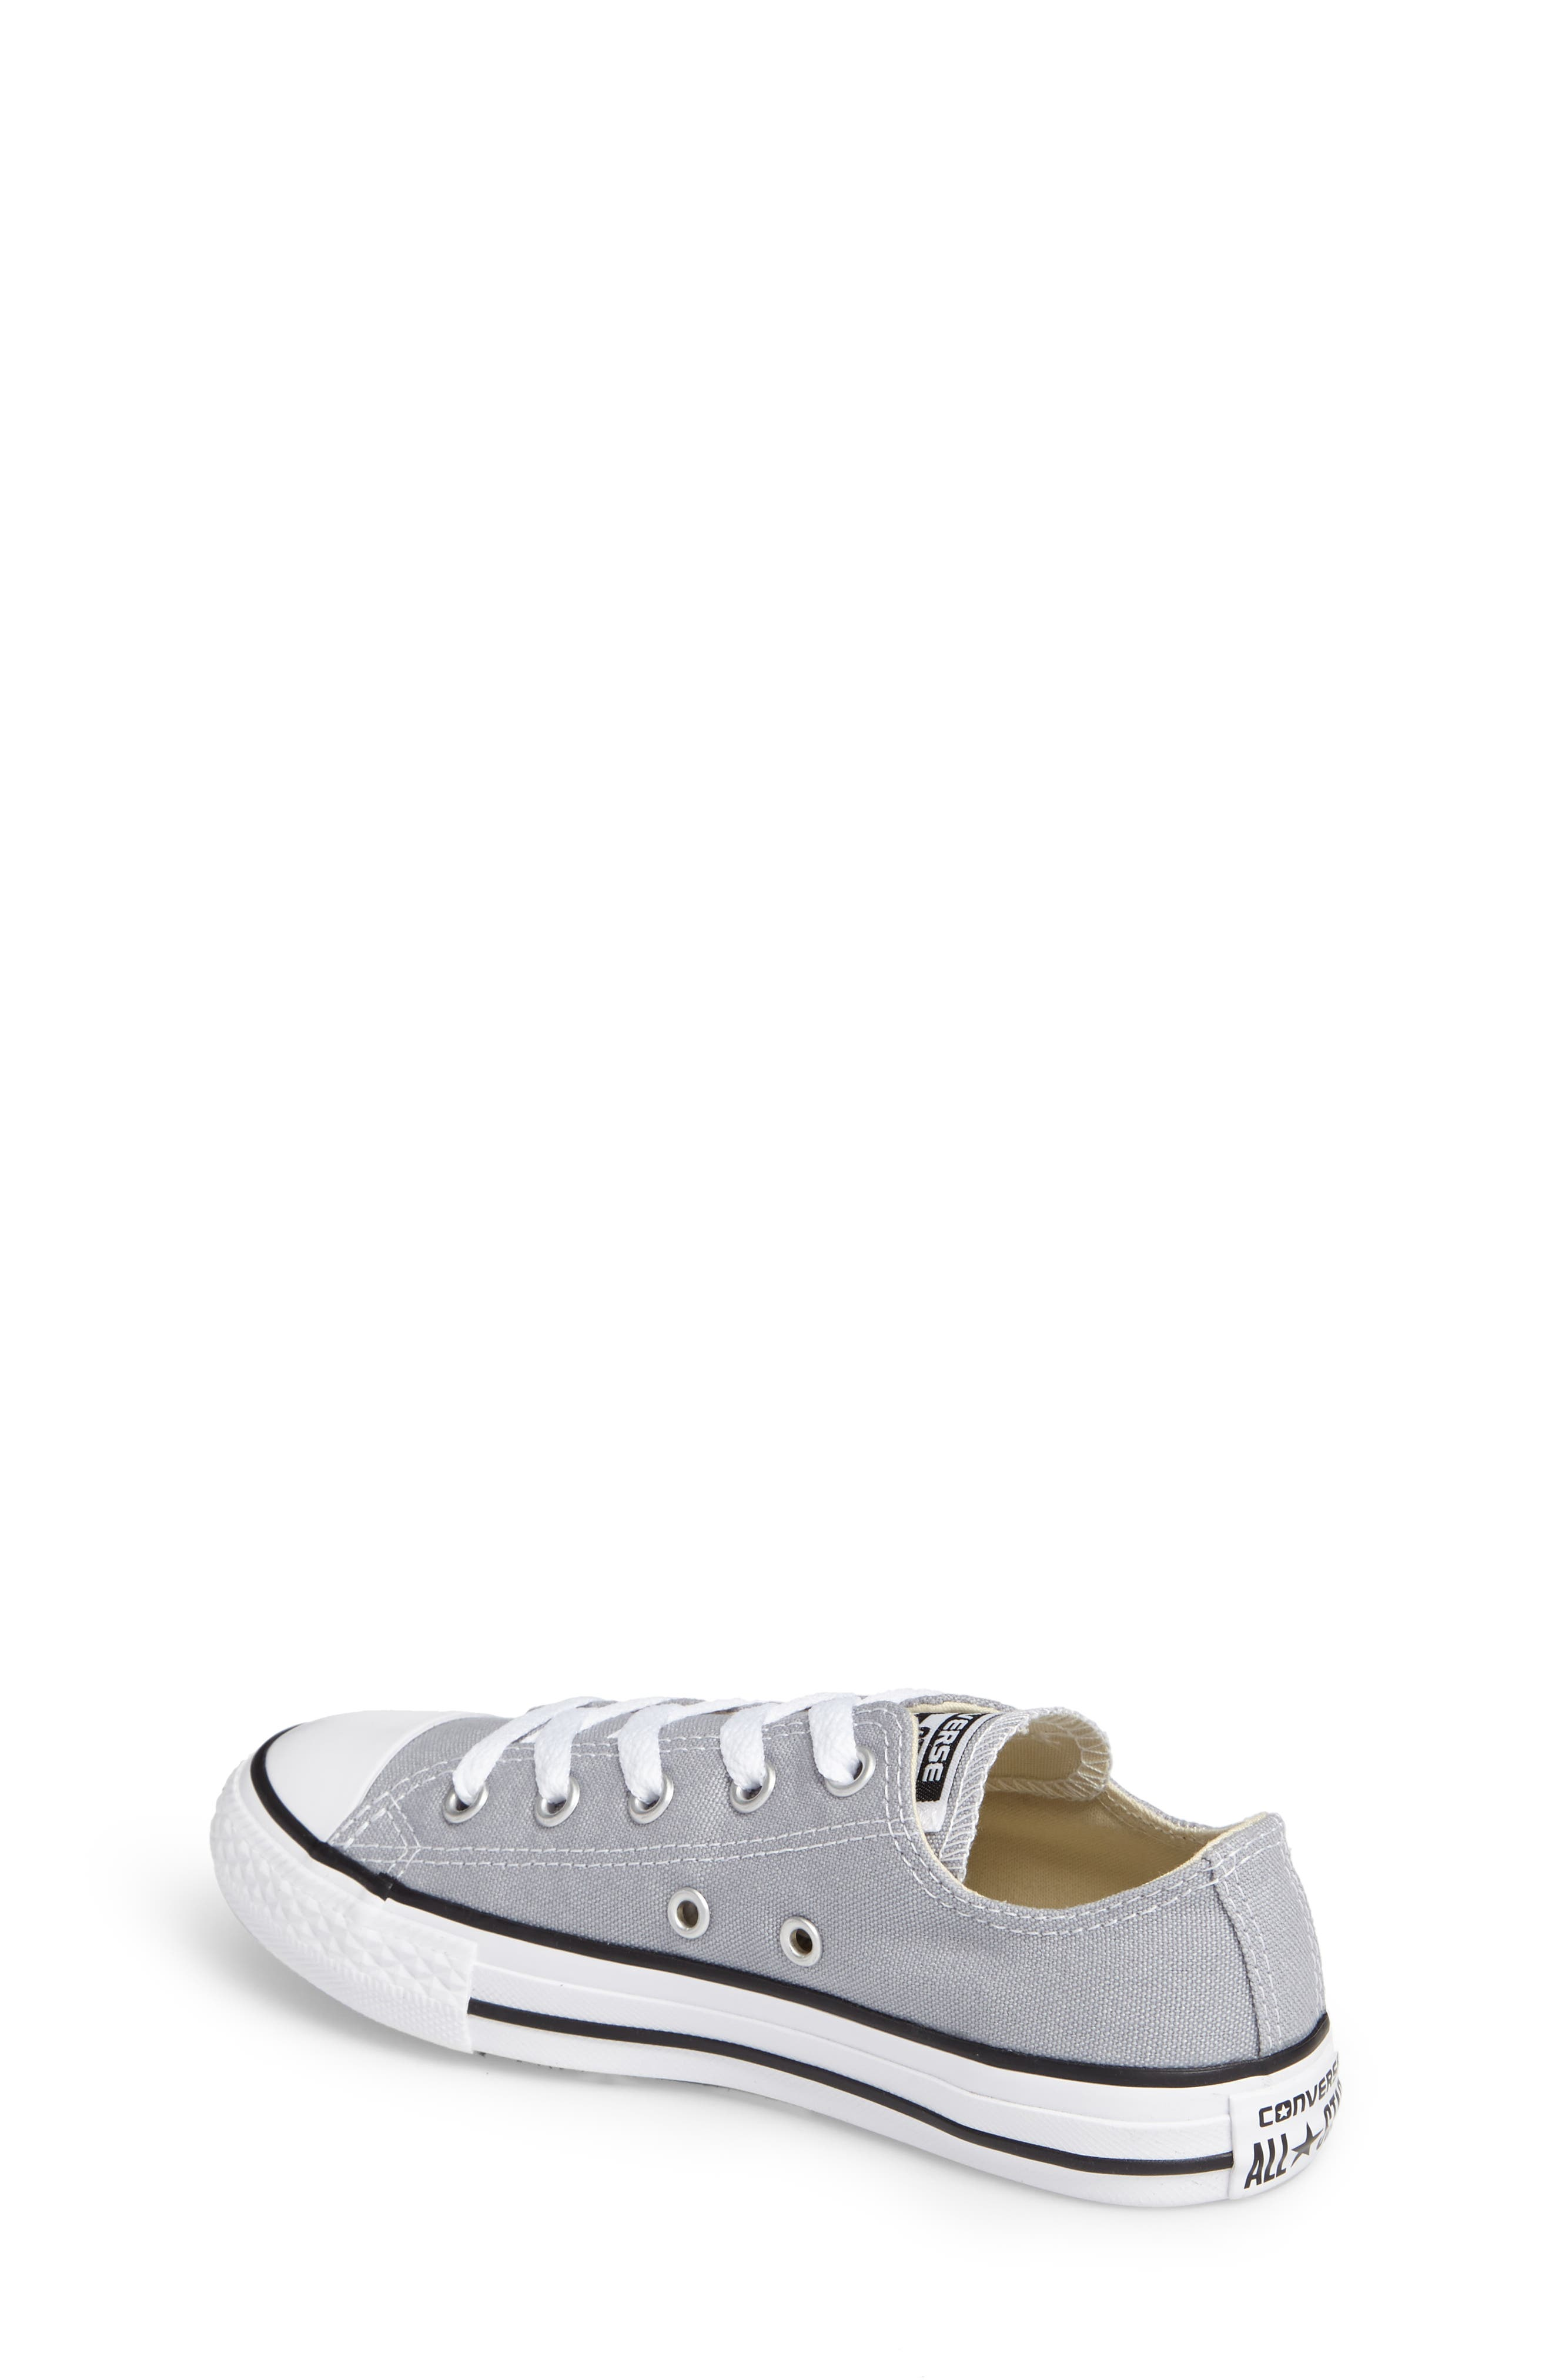 Chuck Taylor<sup>®</sup> All Star<sup>®</sup> 'Ox' Low Top Sneaker,                             Alternate thumbnail 2, color,                             097